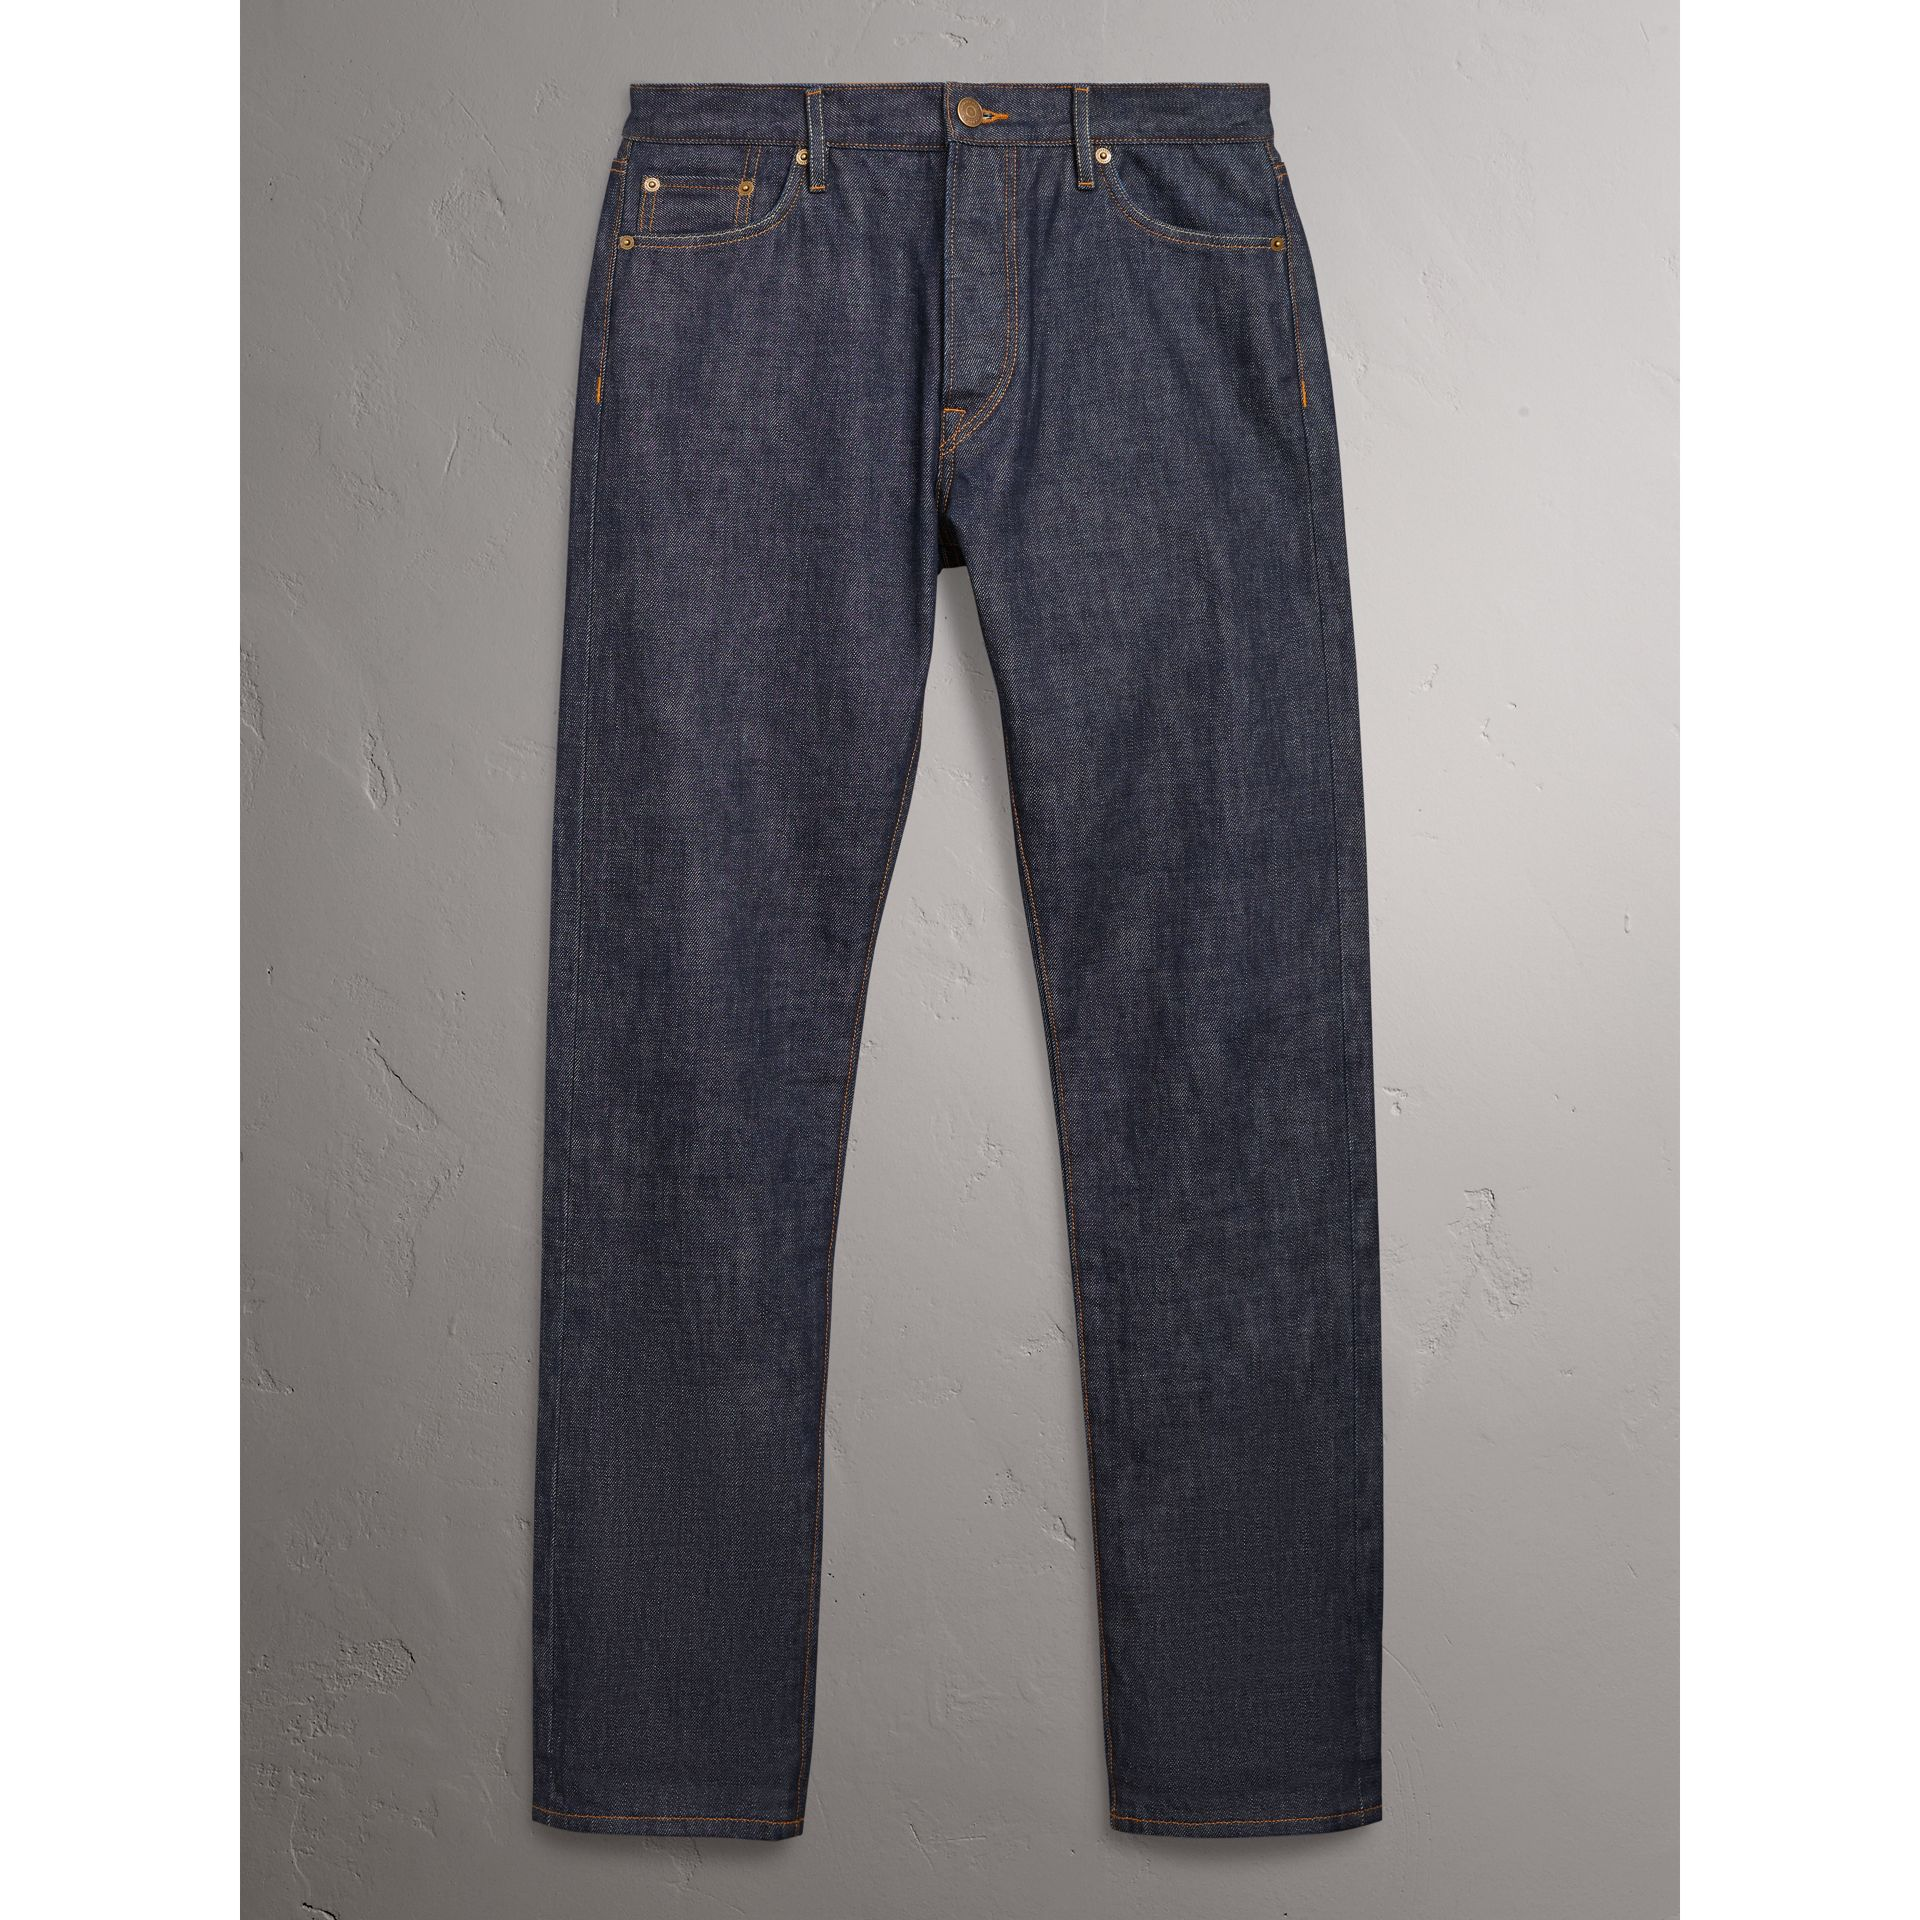 Relaxed Fit Japanese Selvedge Denim Jeans in Mid Indigo Blue - Men | Burberry United Kingdom - gallery image 3